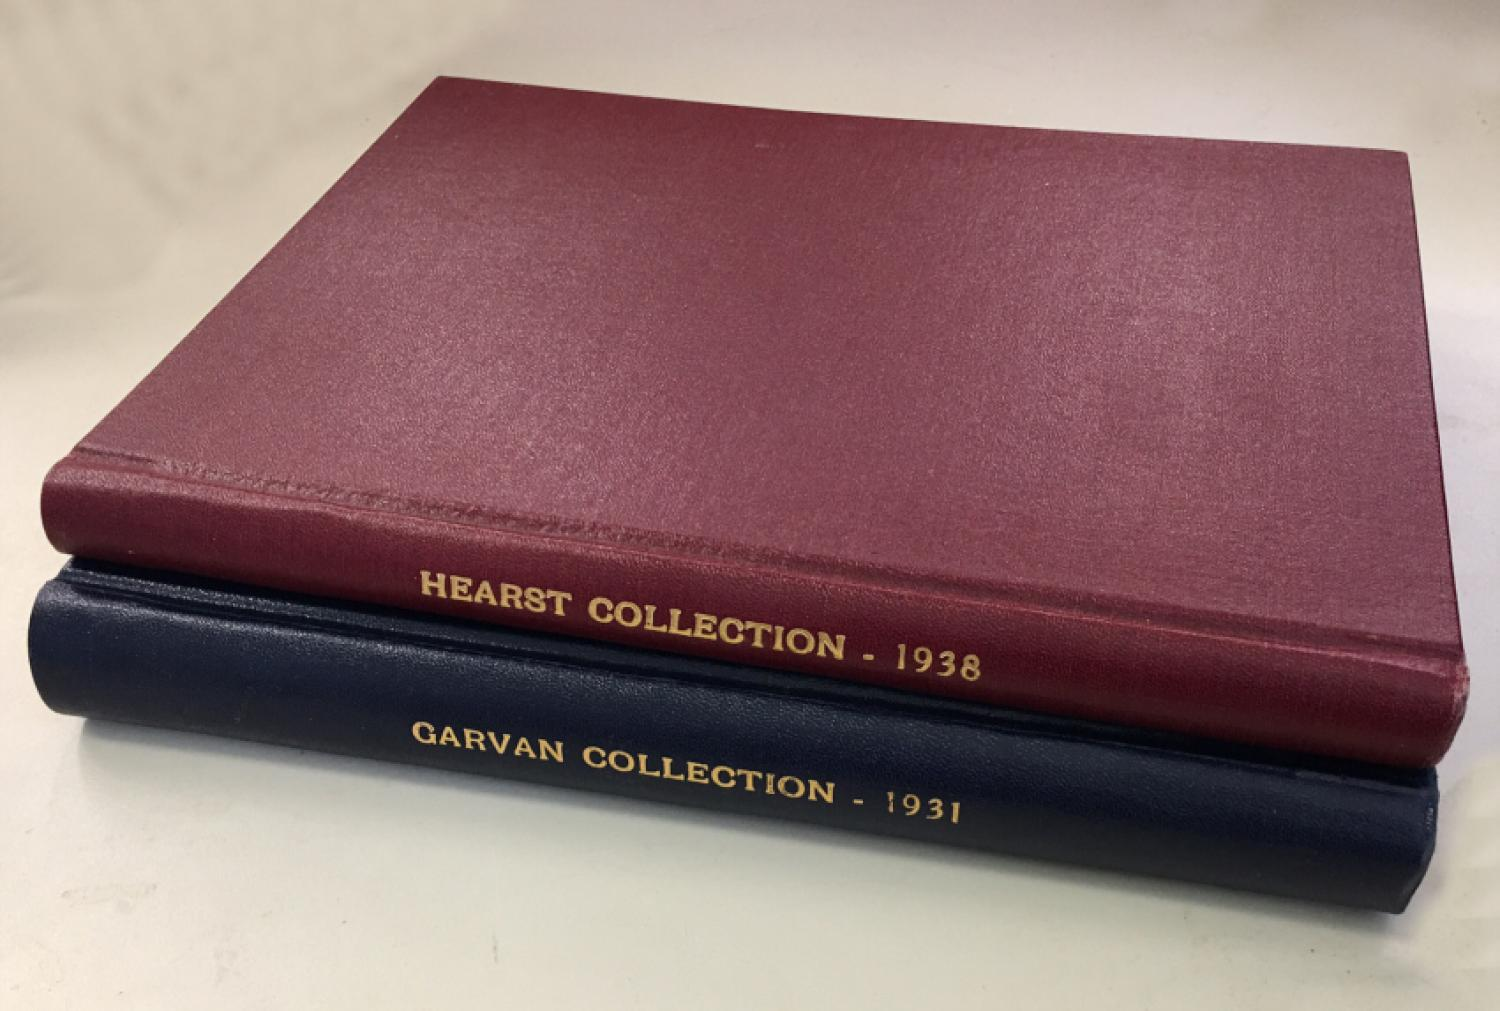 1931 Garvan Collection and 1938 Hearst Collection Part II auction catalogues